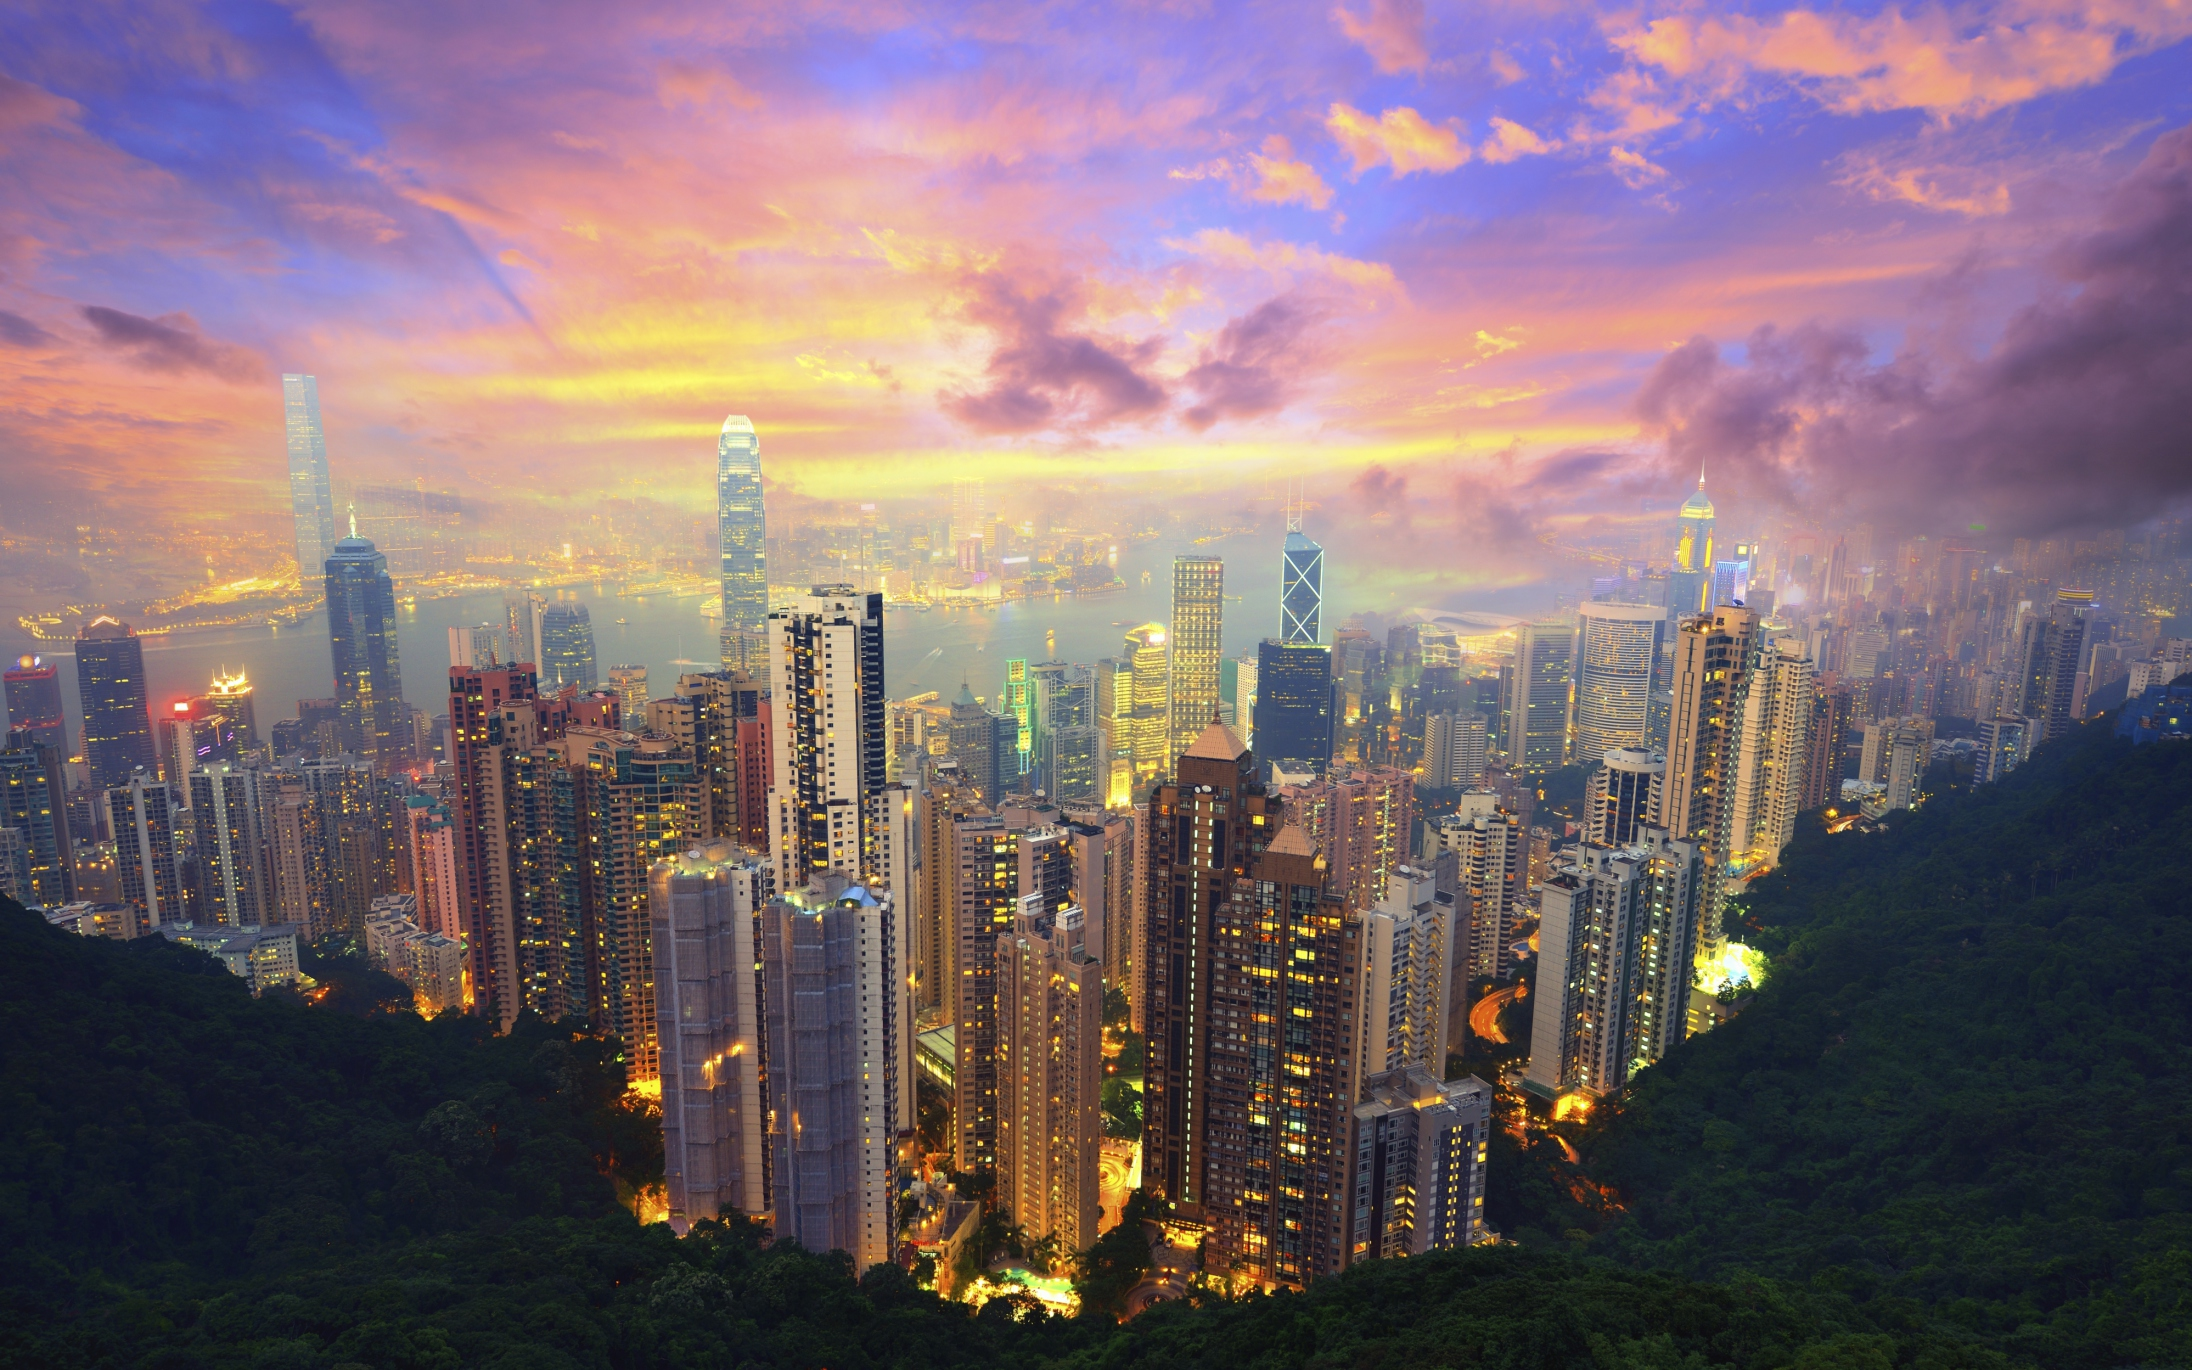 Victoria Peak at Sunset